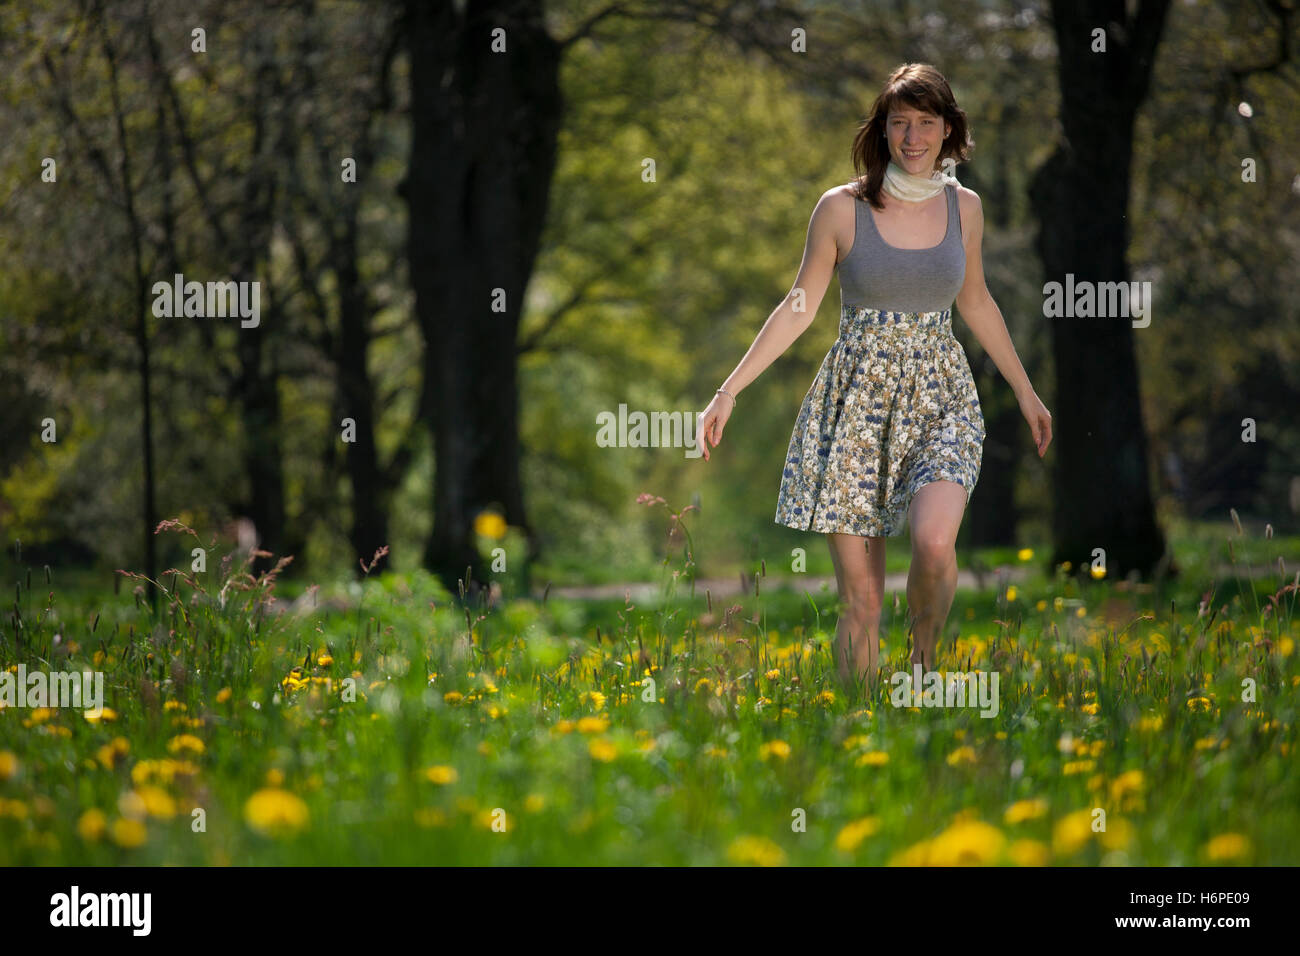 country life - Stock Image